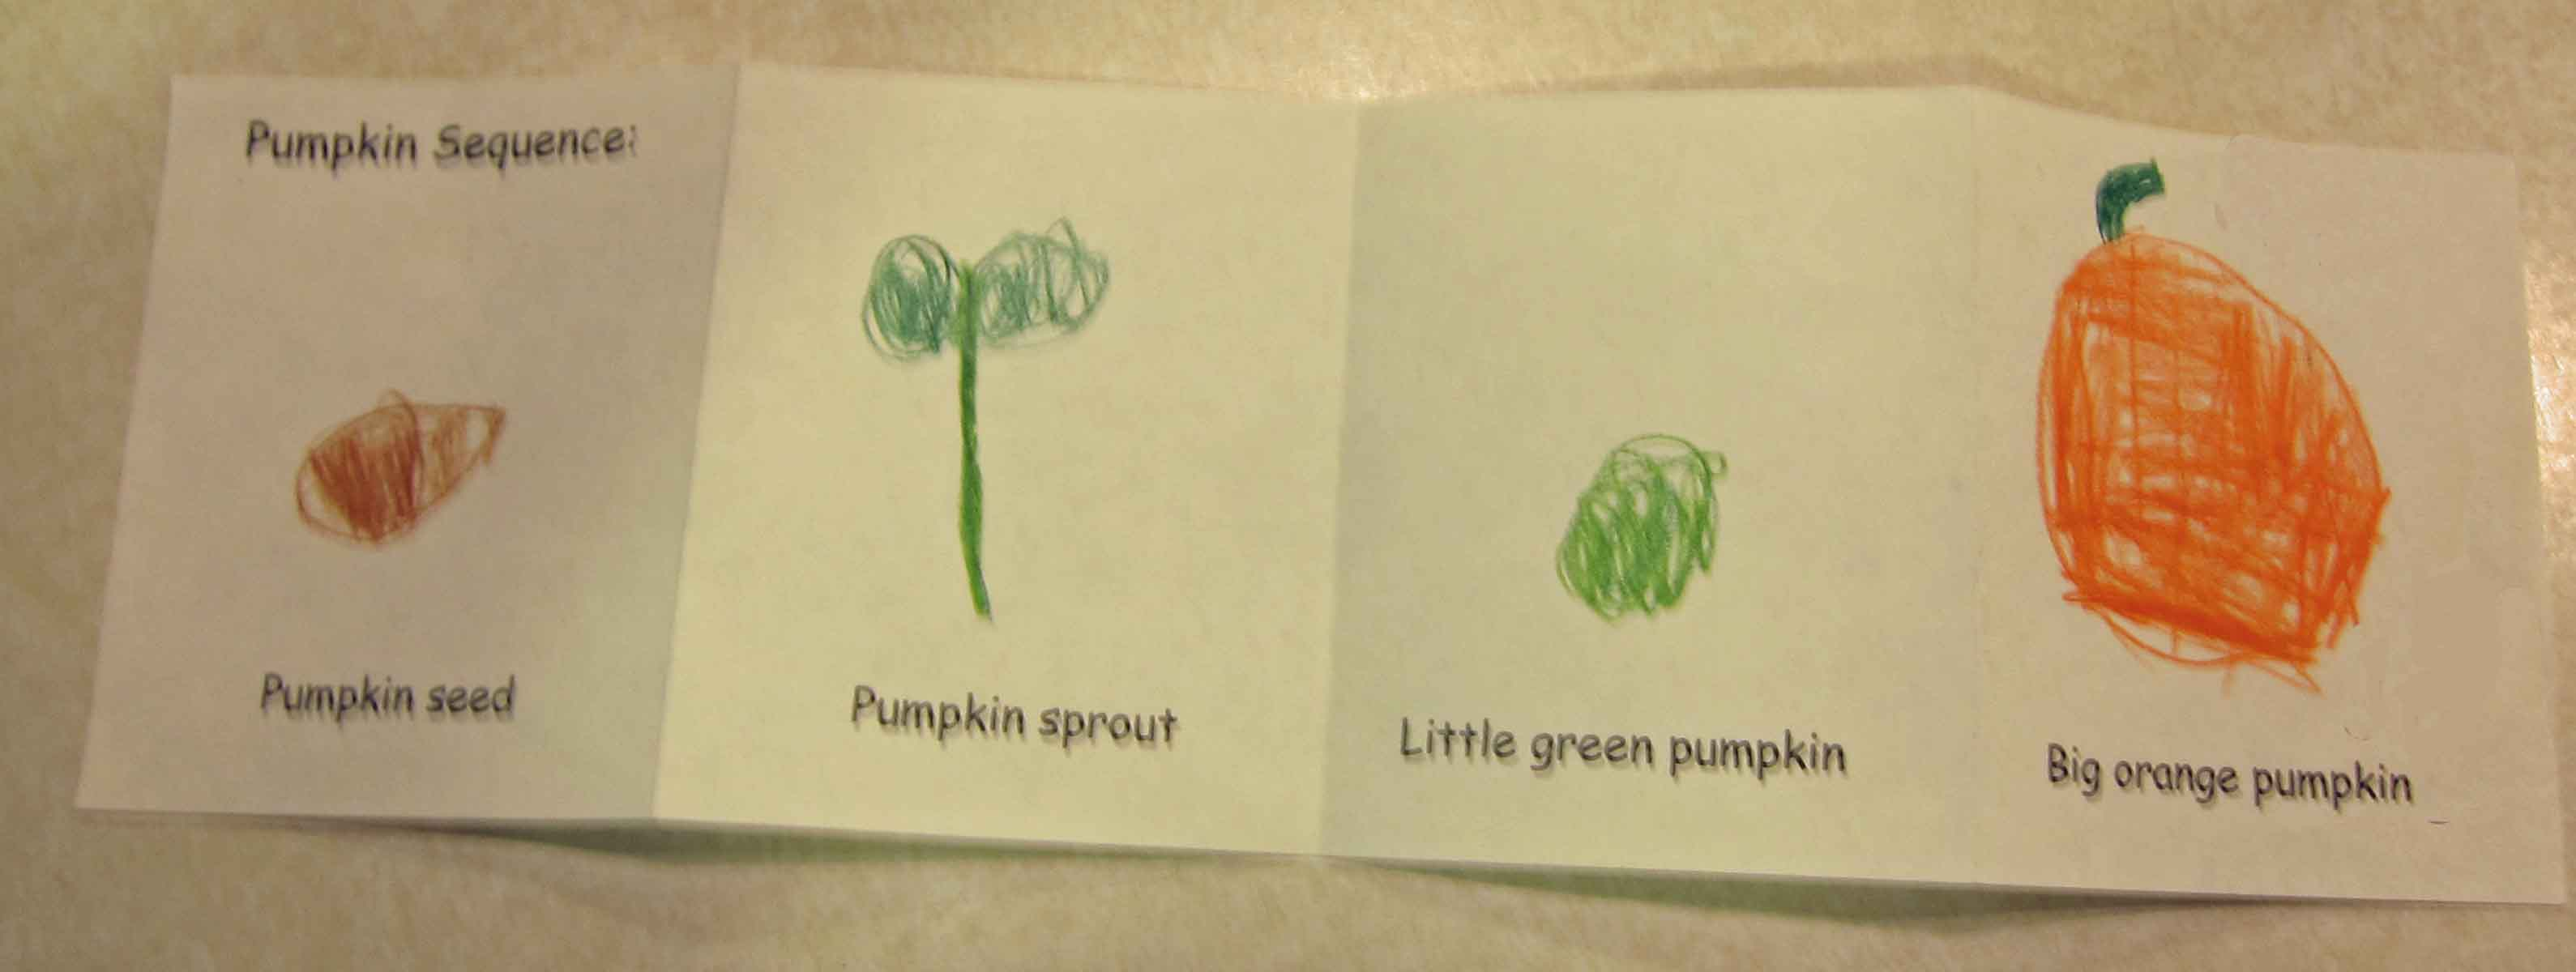 worksheet Parts Of A Pumpkin Worksheet plants phonics by spellings blog pumpkin plant vine